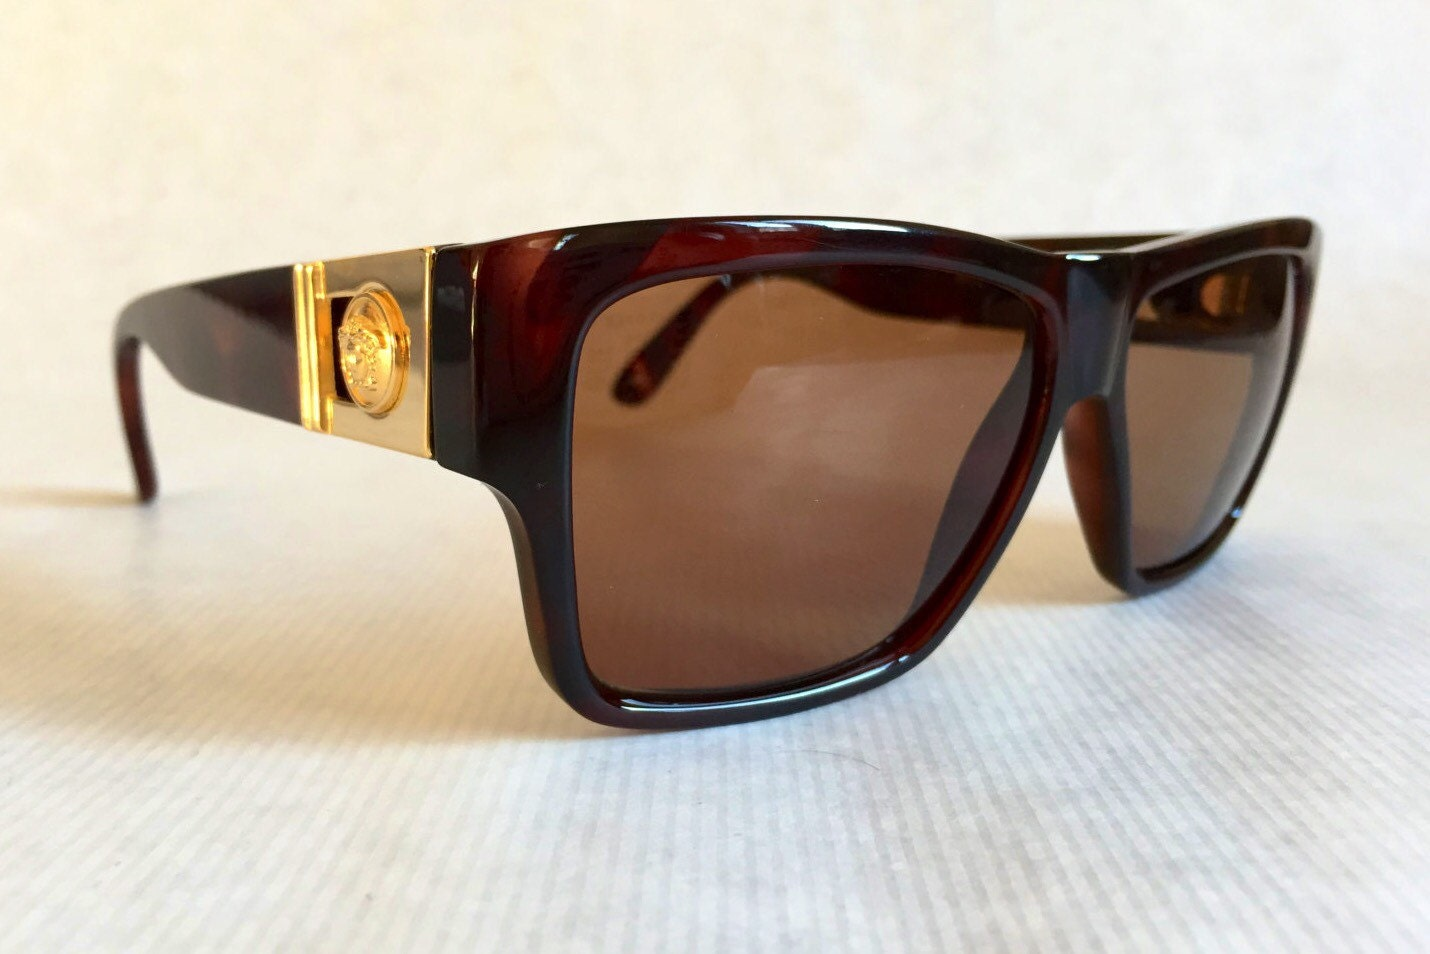 b459693a55 Gianni Versace 372 A Col 900 Vintage Sunglasses New Unworn Deadstock with  Original Versace Case. gallery photo ...